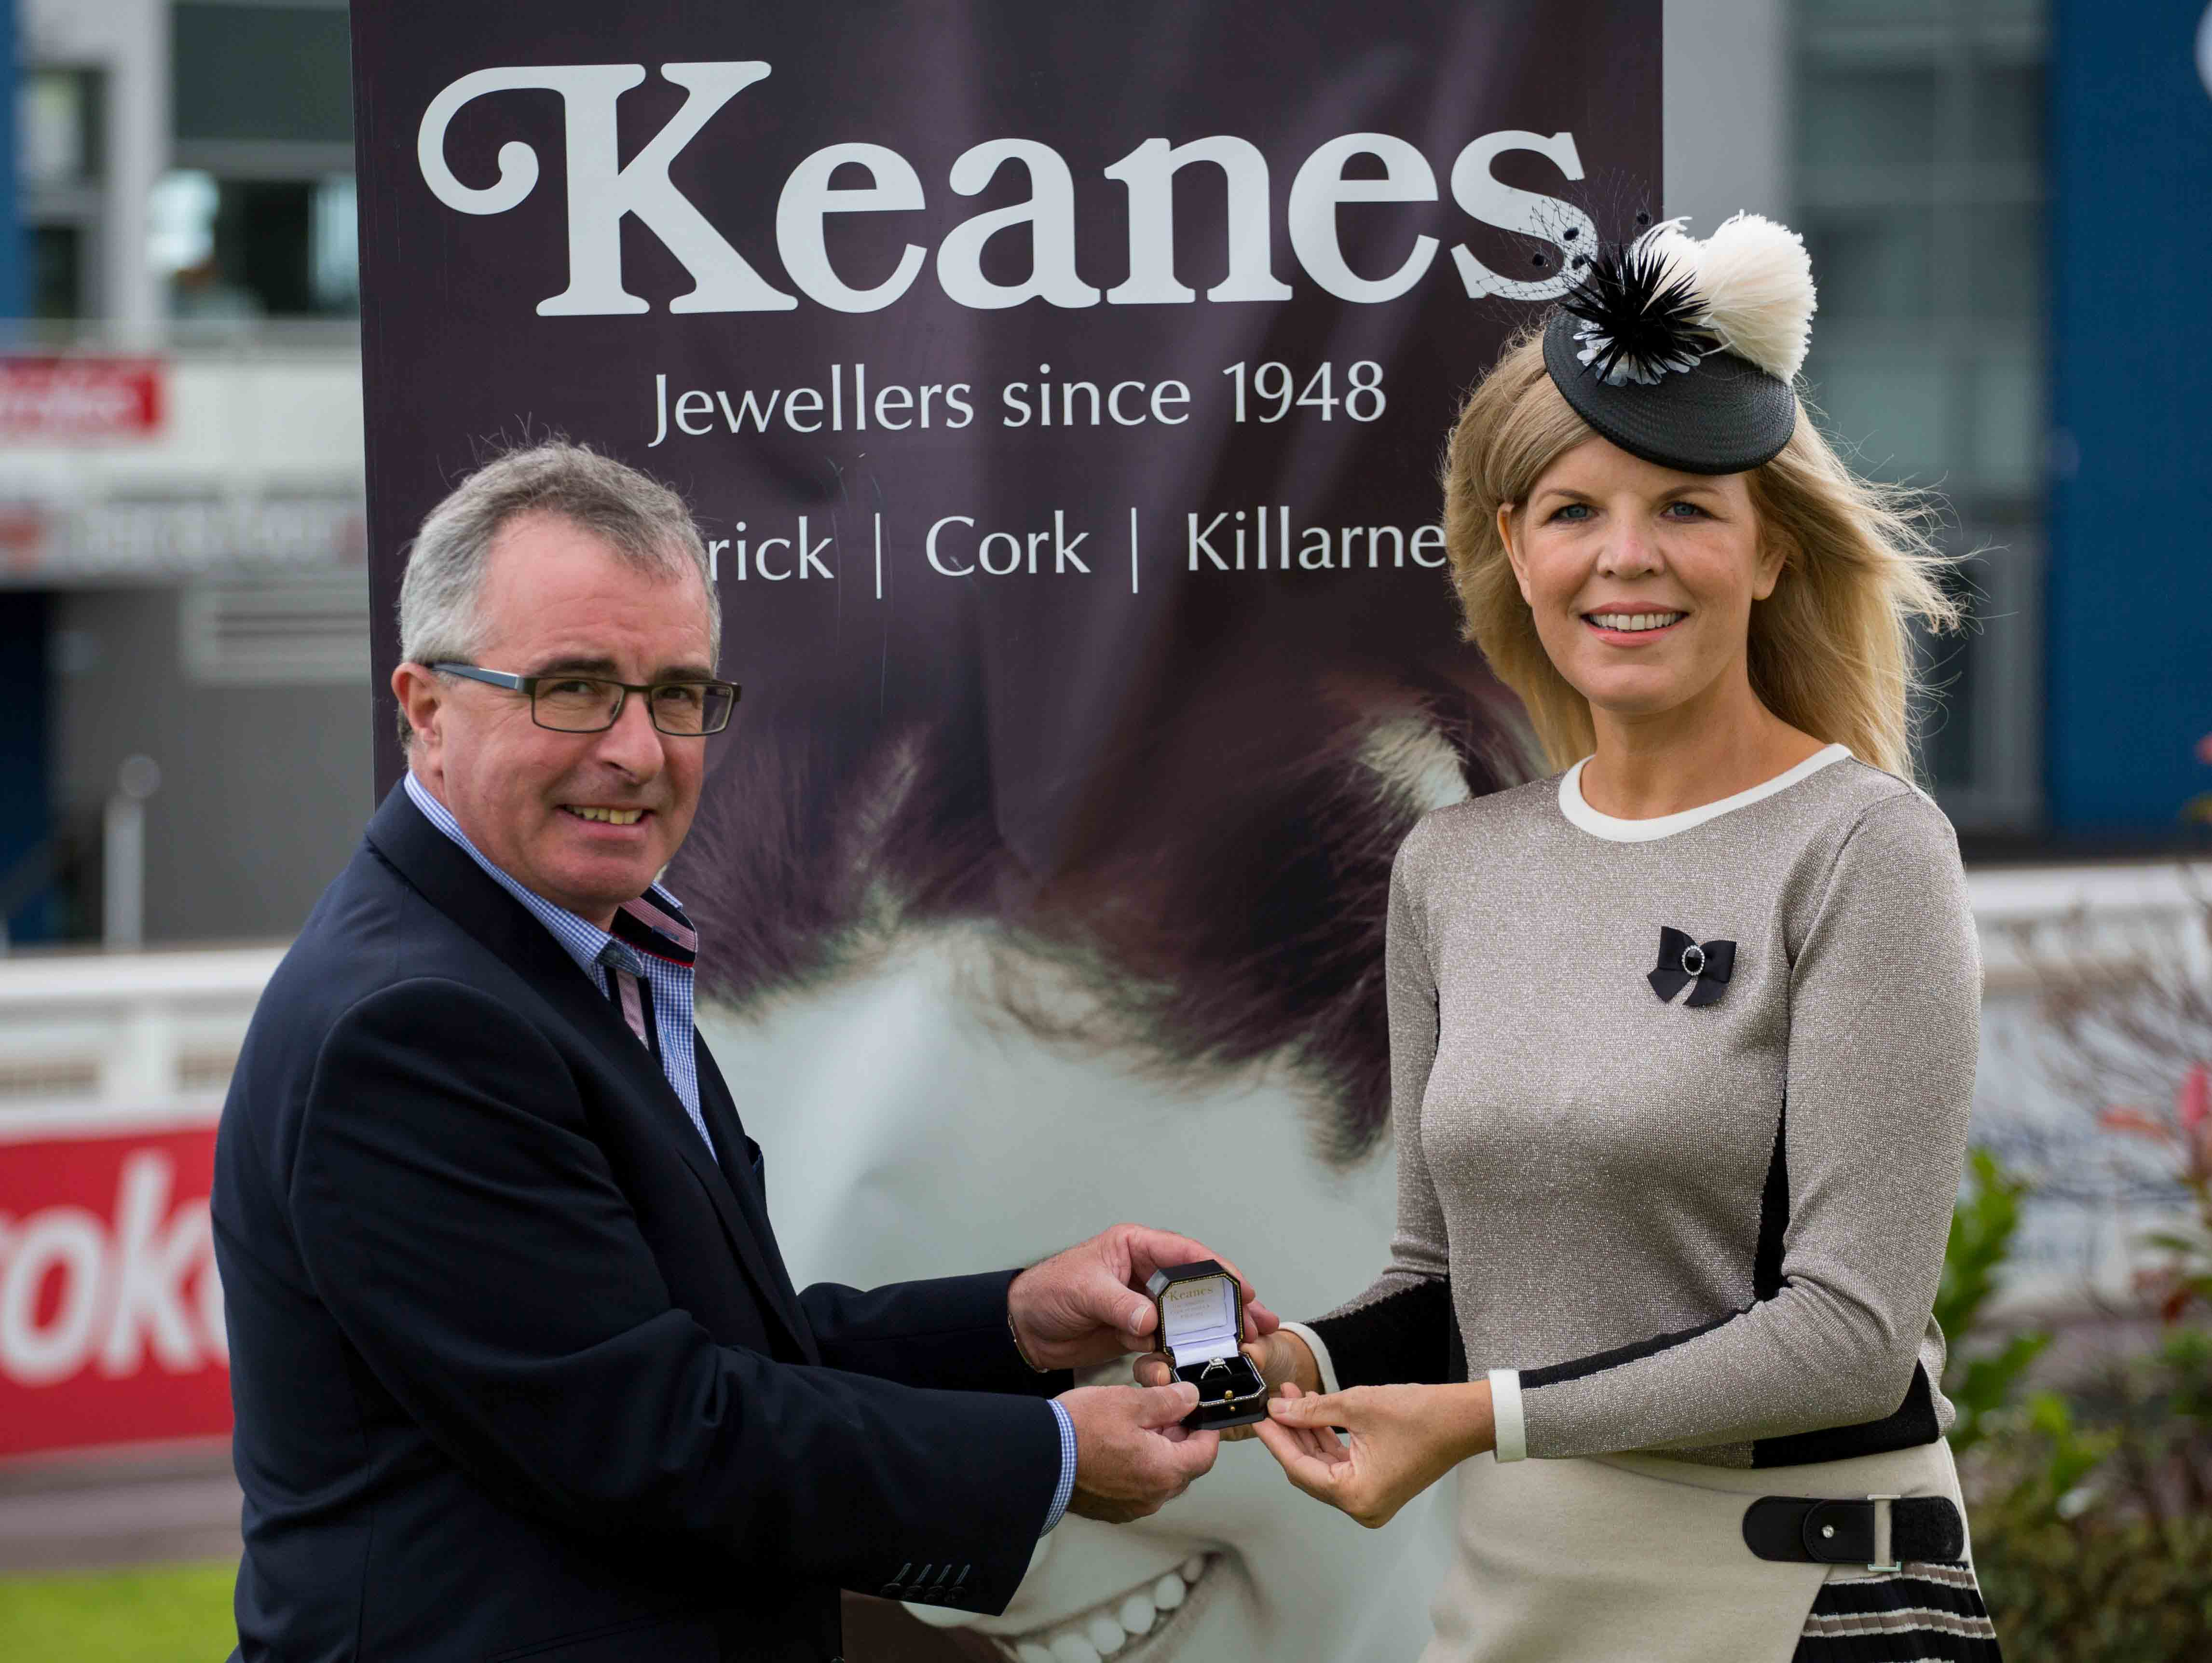 Keanes Jewellers Ladies Day at Limerick Racecourse, Sun Oct 11